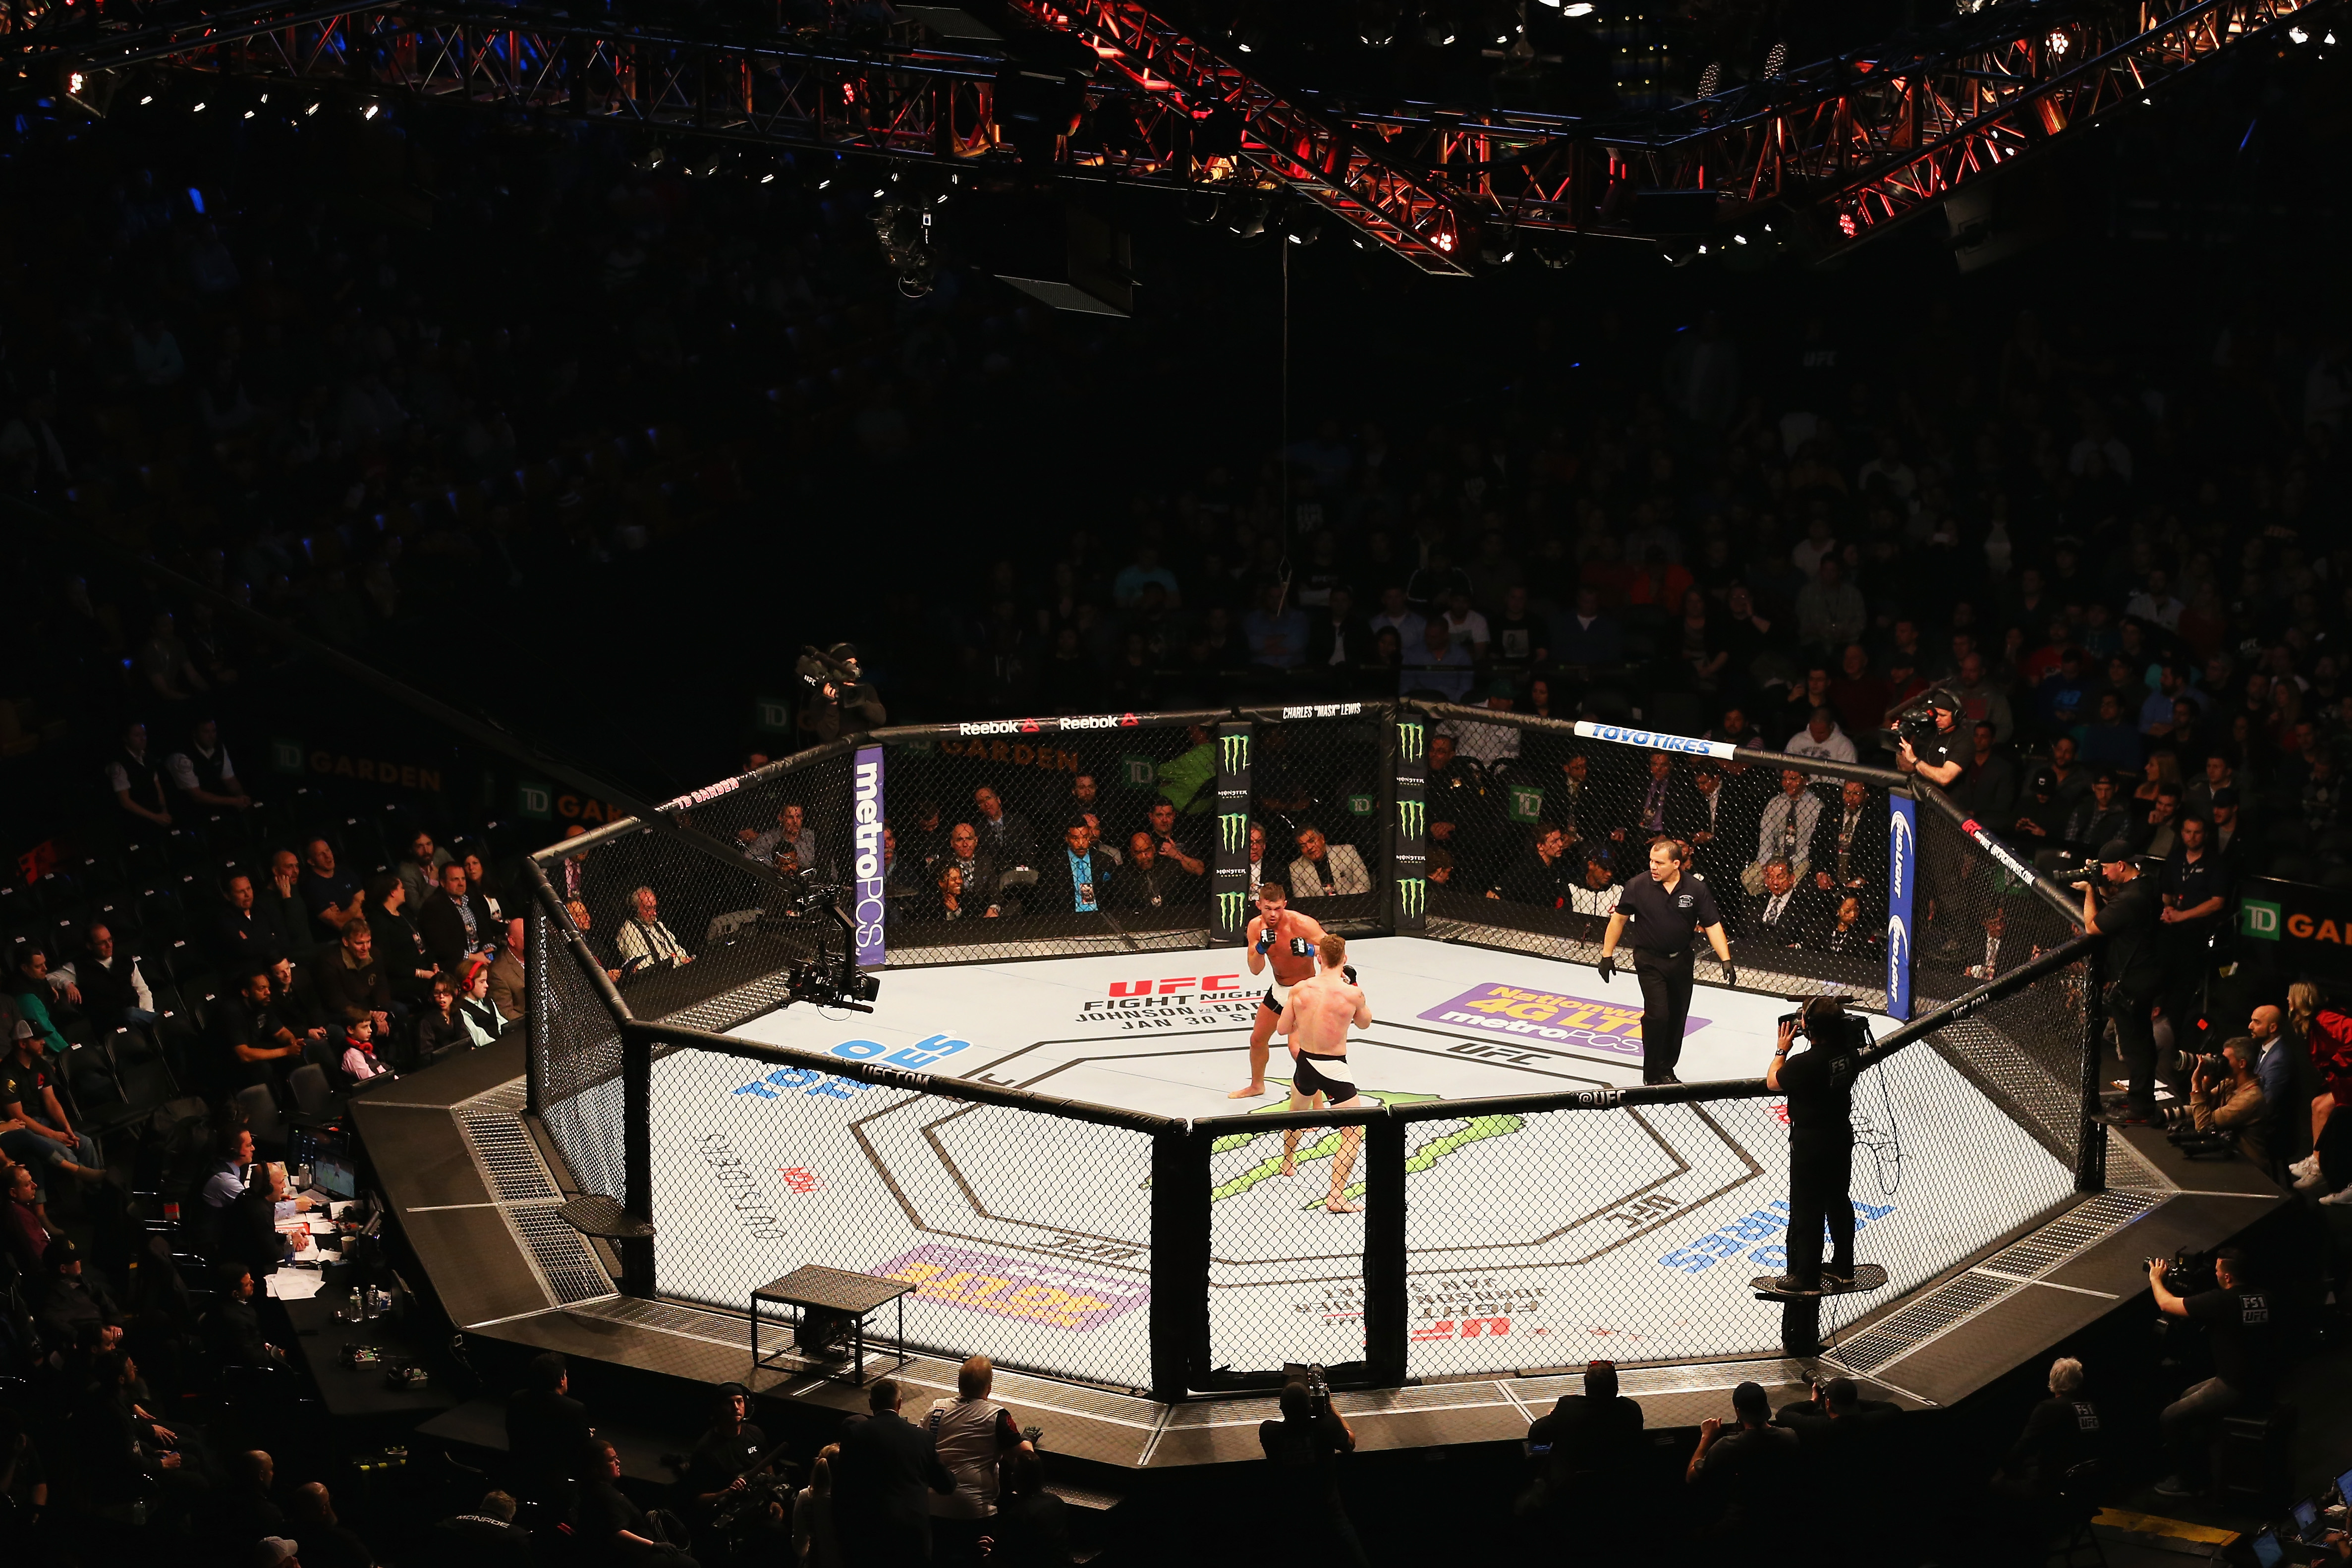 It's been a long time since an eight-sided ring has been set up in Buffalo for professional matches, but the wait ends in April. (Getty Images)